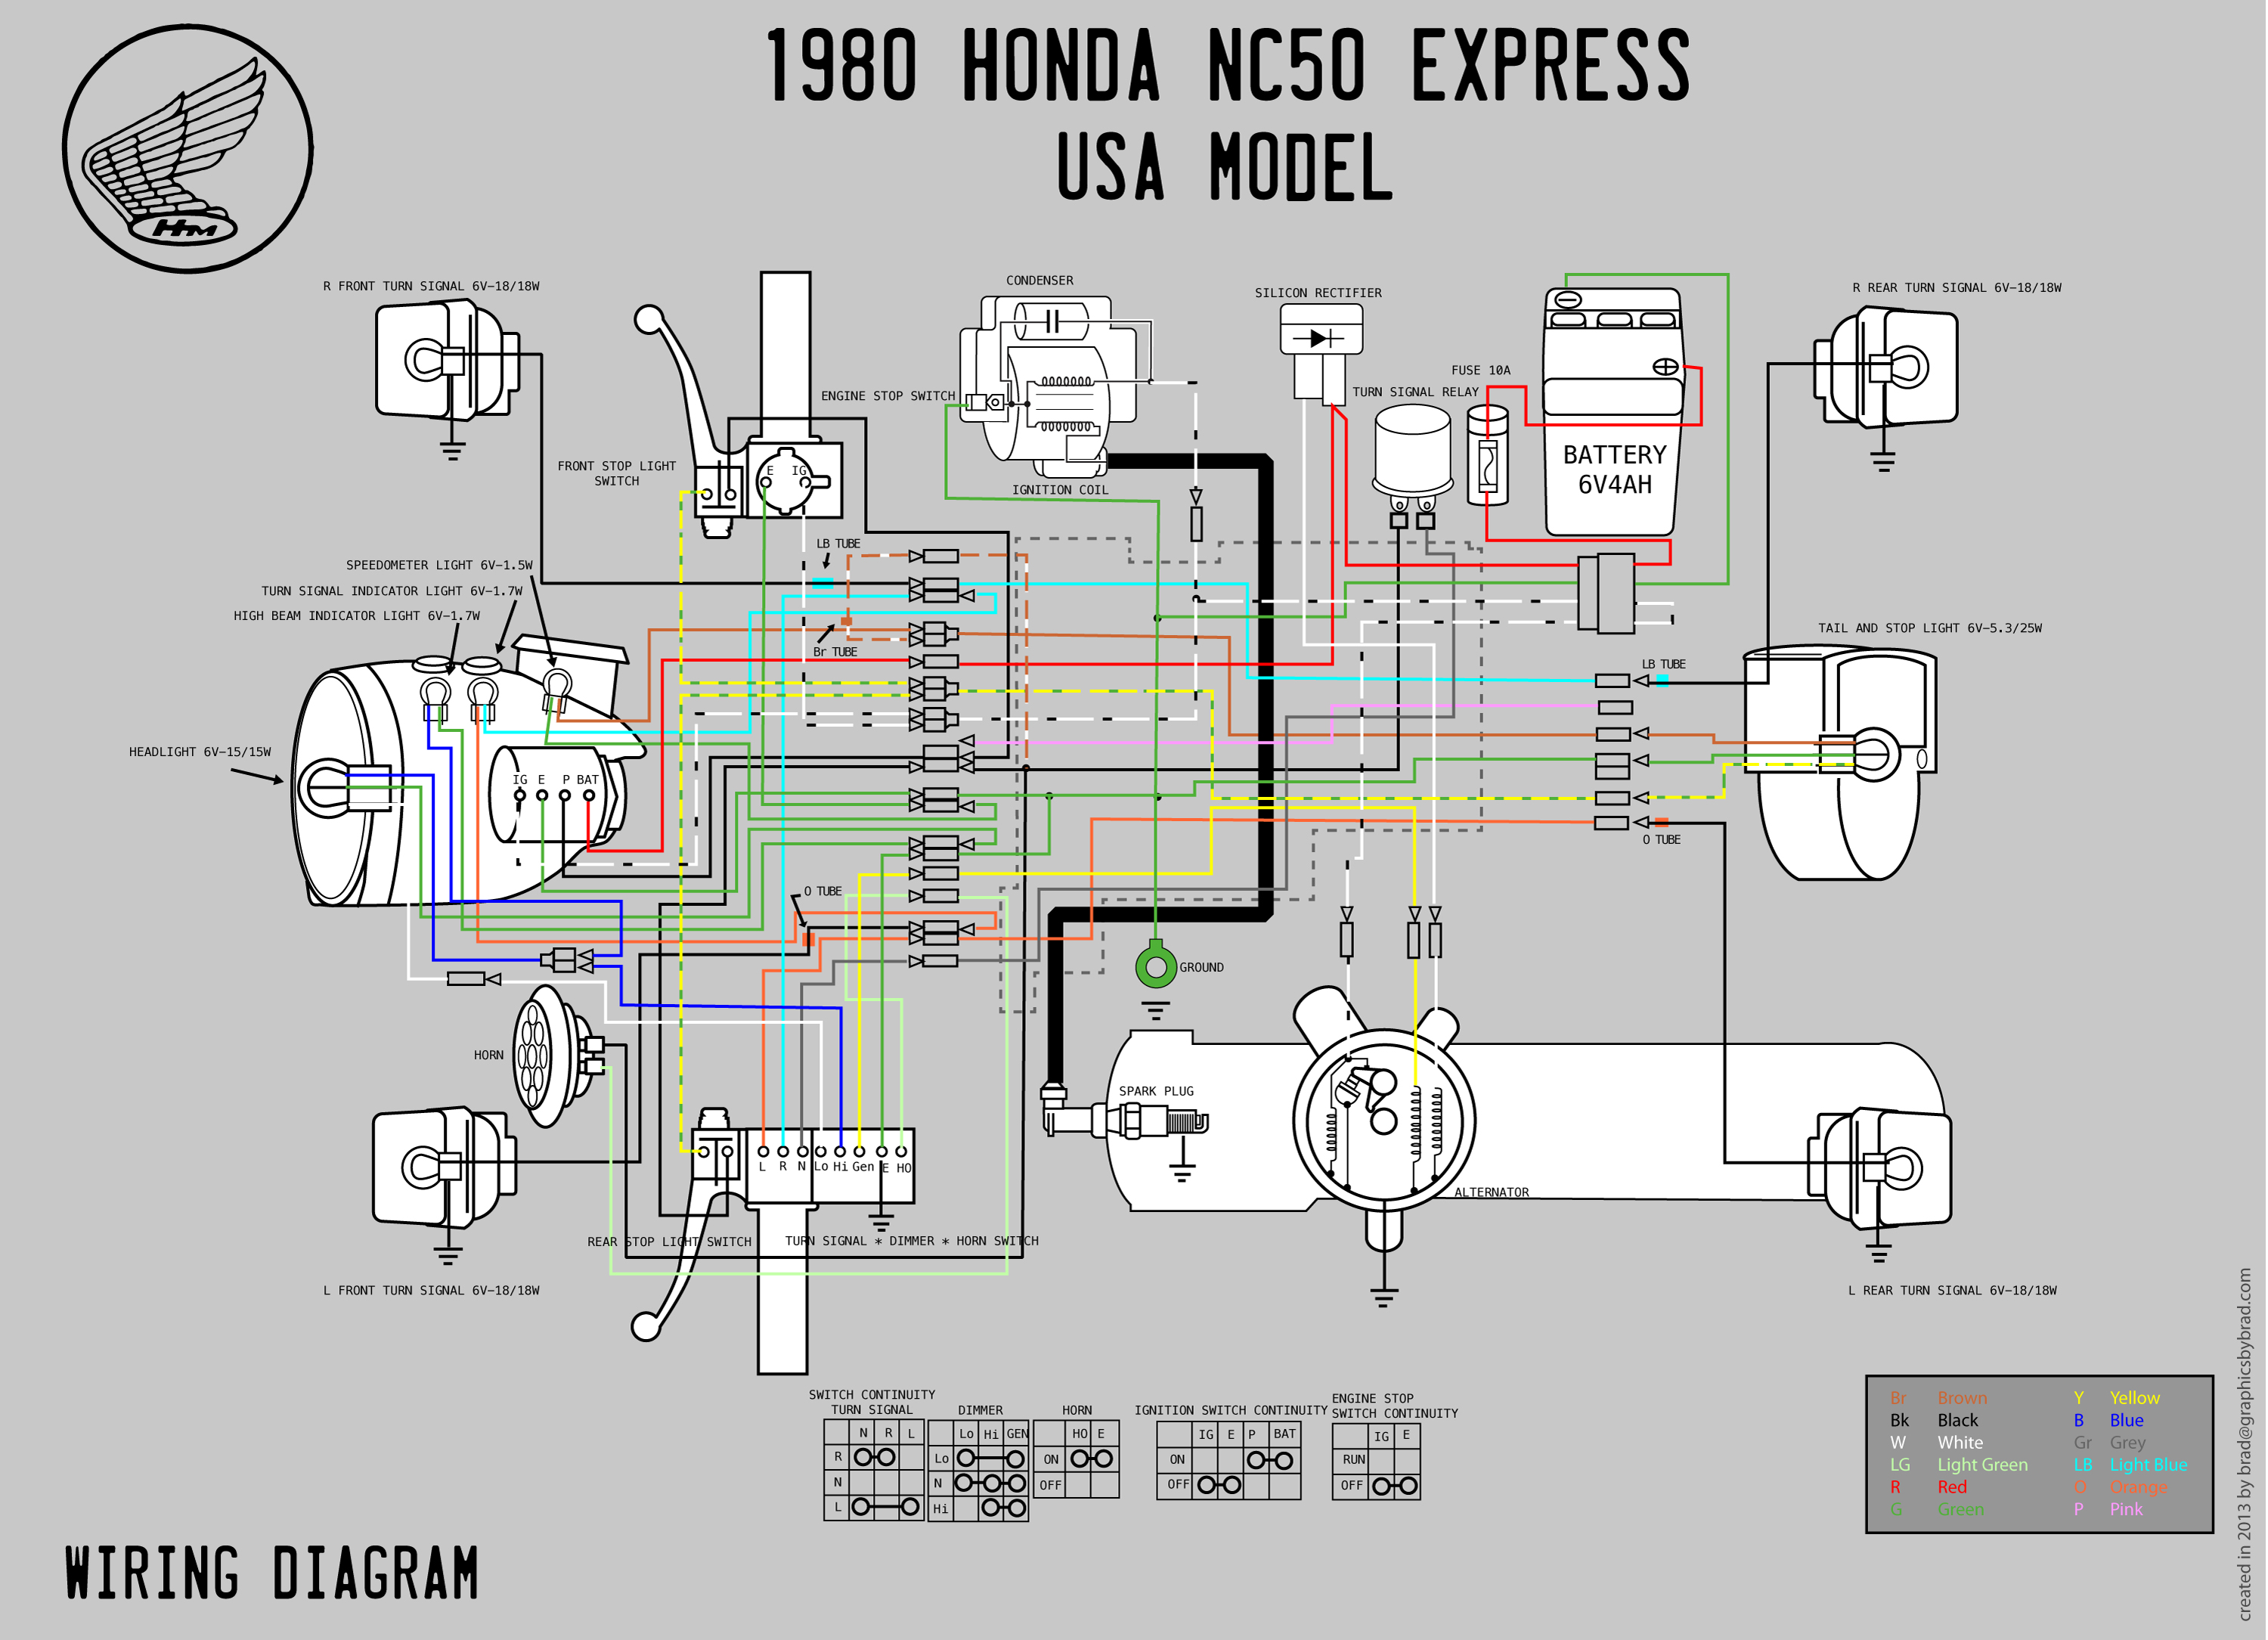 1980 nc50 wiring lrg 1980 honda express wiring diagram 1980 wiring diagrams collection tg1 express wiring diagram at bayanpartner.co